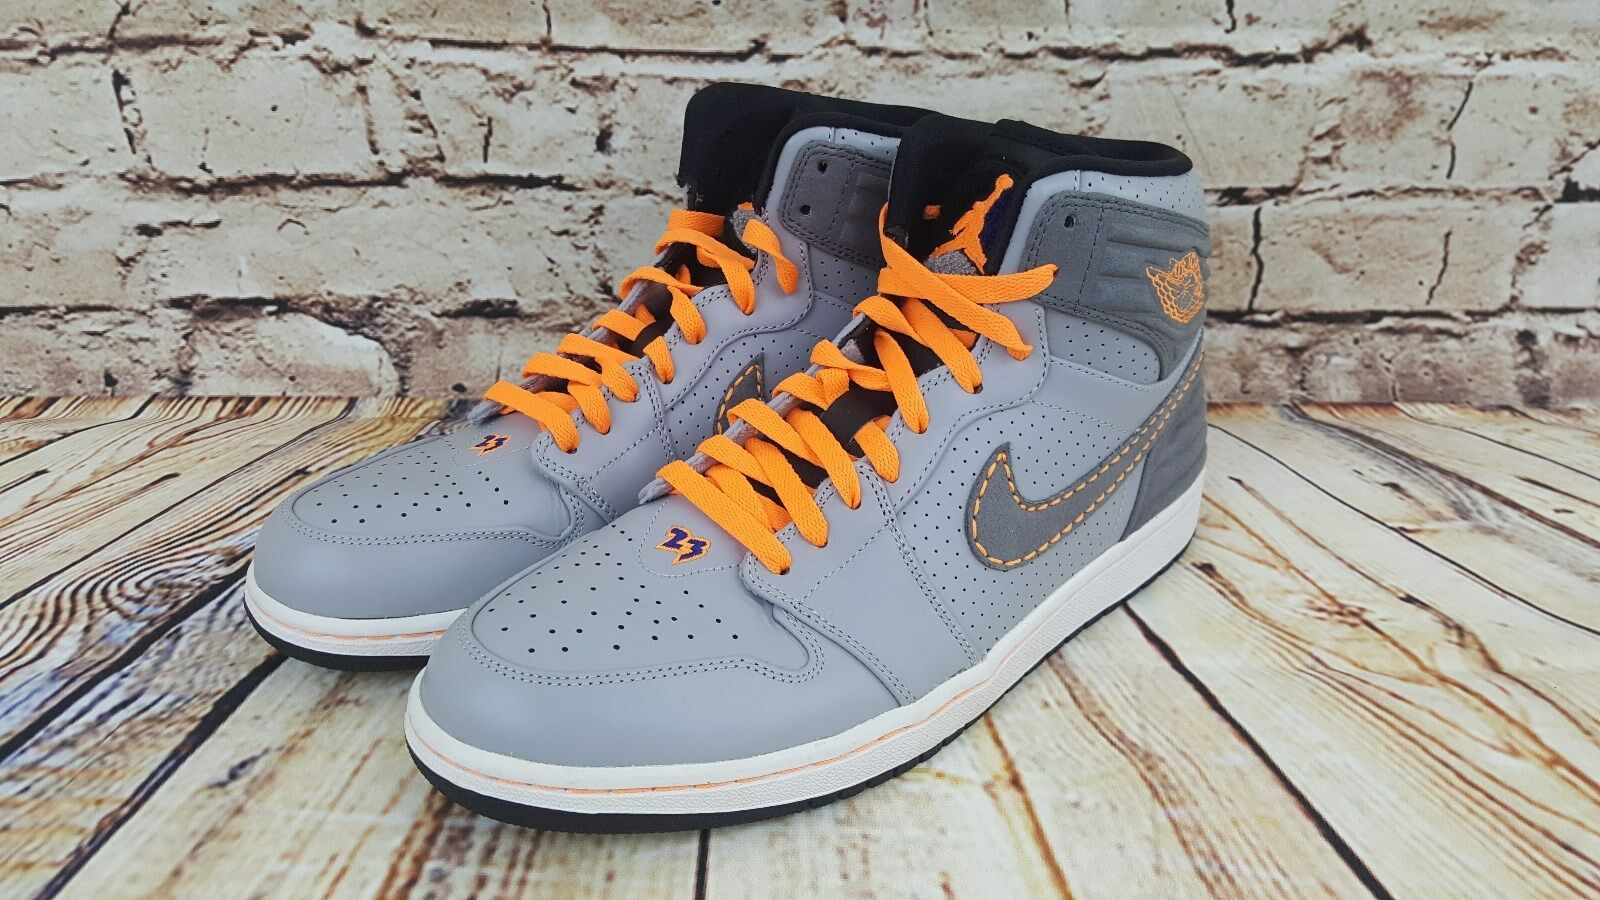 NIKE AIR JORDAN 1 RETRO 93 WOLF GREY-BRIGHT CITRUS